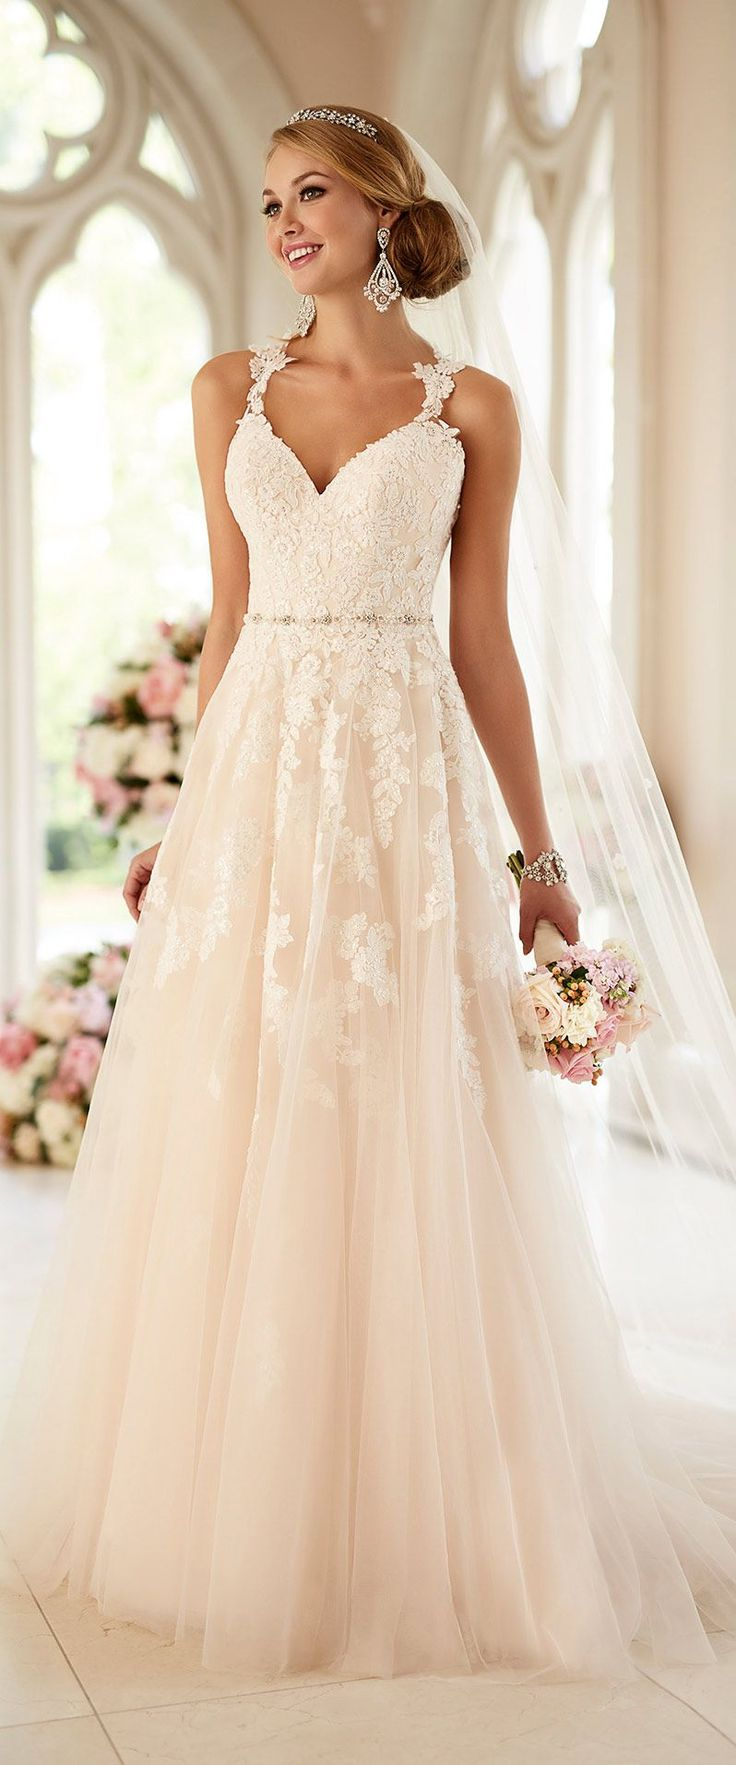 Stella York lace wedding dress with straps http://eweddingssecrets.com/how-to-plan-your-wedding-on-a-budget.html